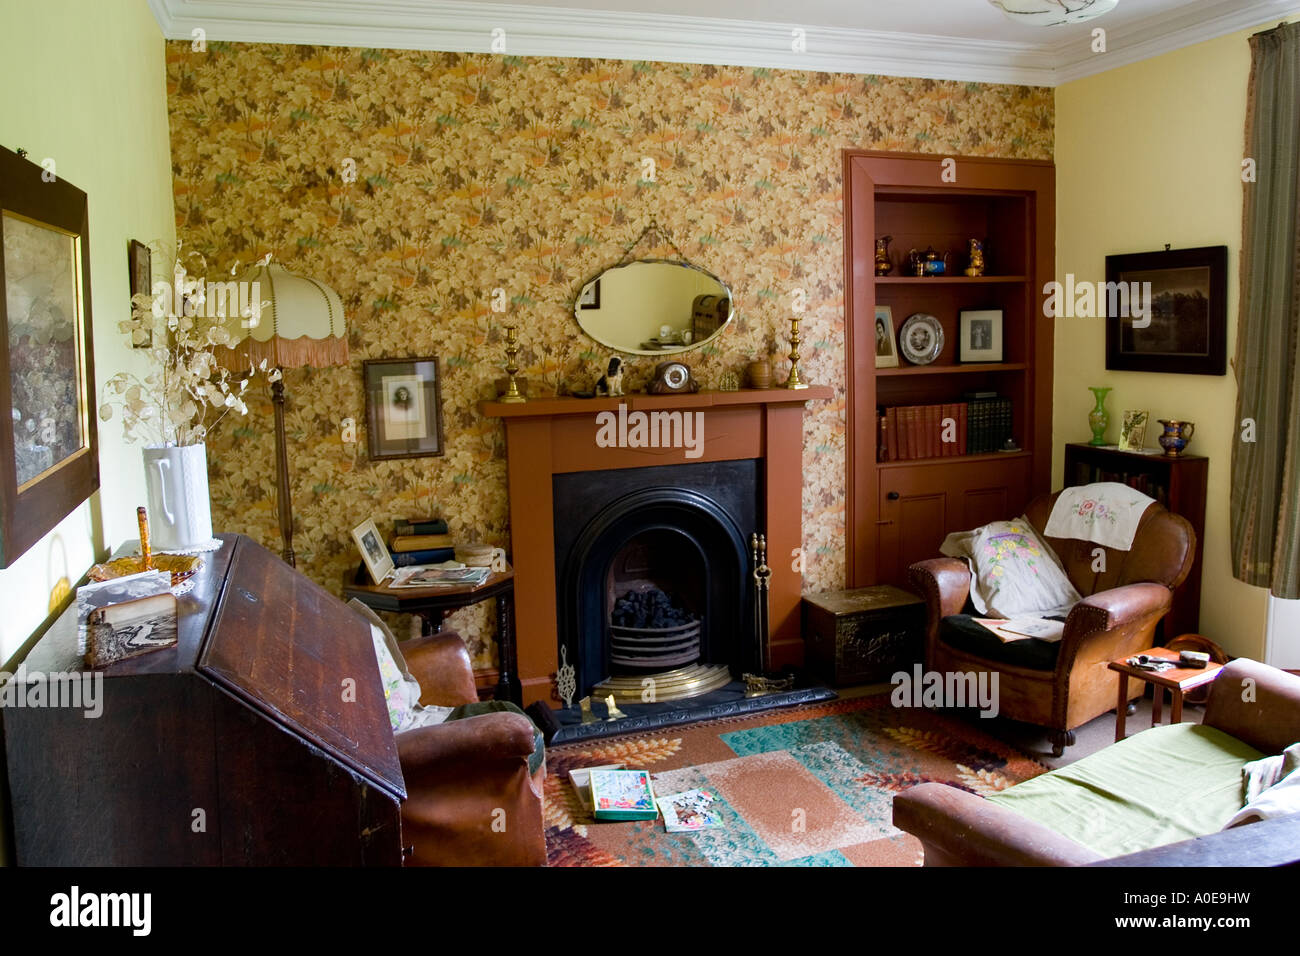 Amazing Old Fashioned Living Room   Stock Image